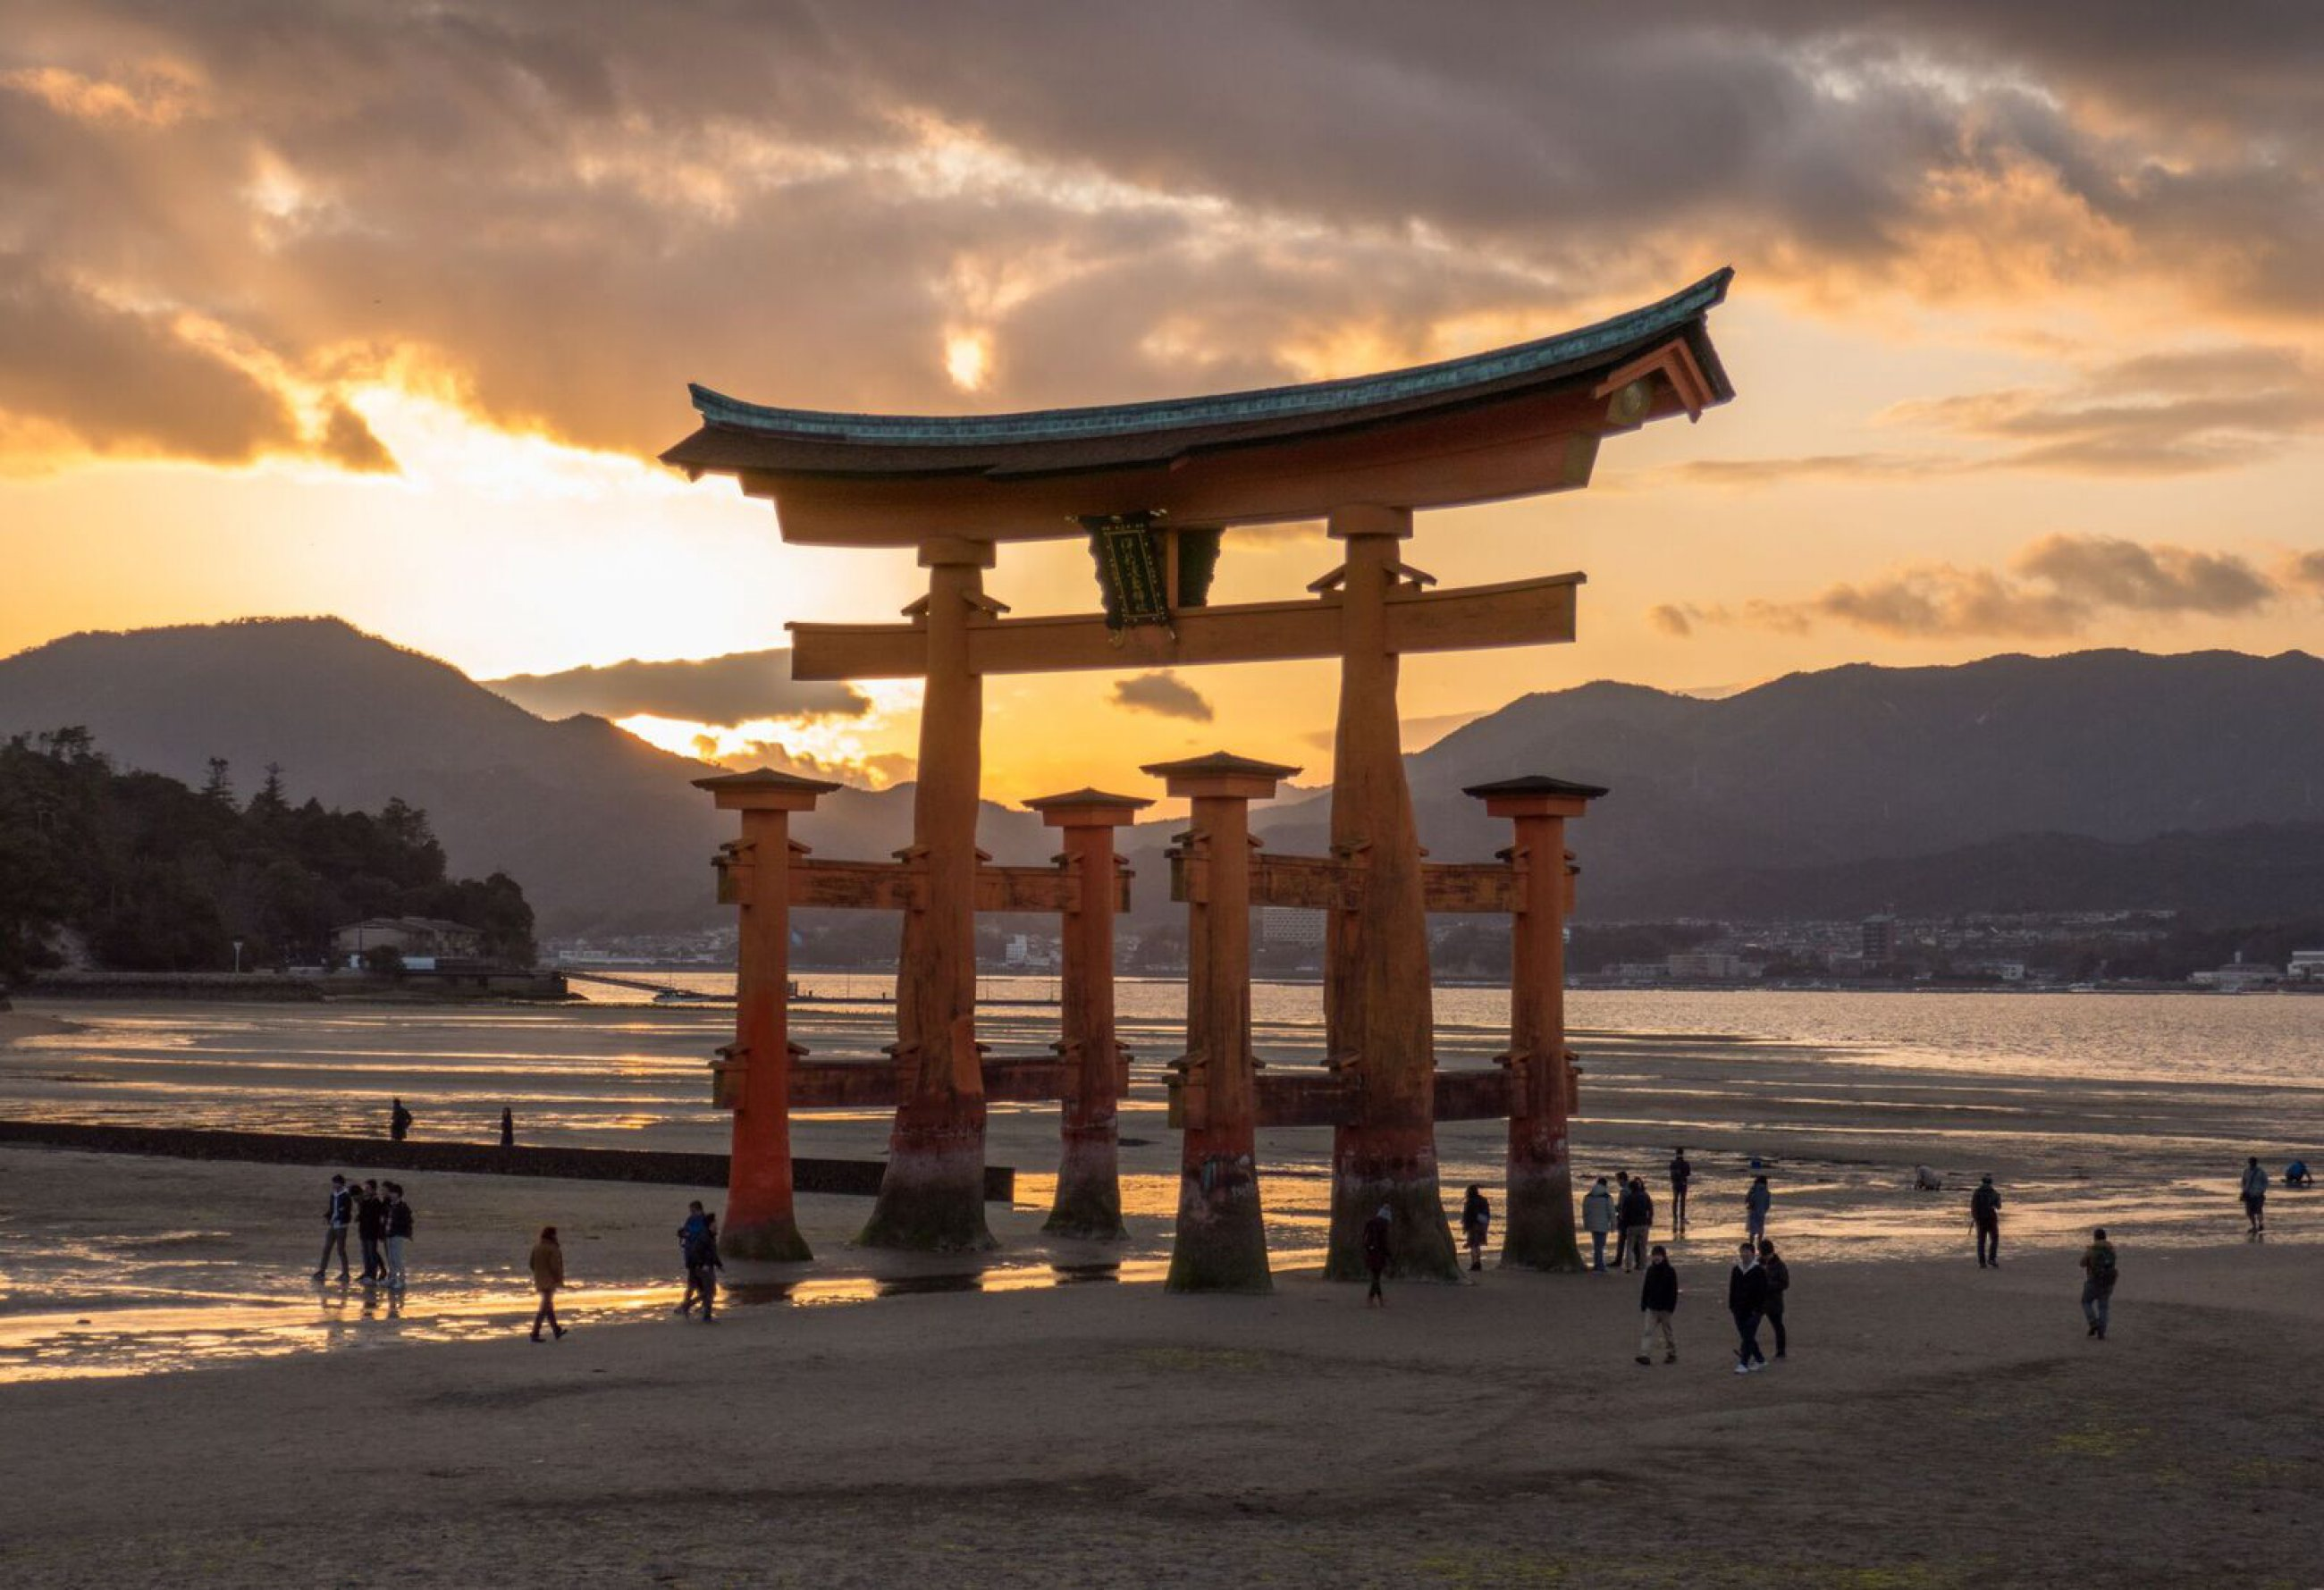 https://bubo.sk/uploads/galleries/4928/martin-simko-tori-brana-na-ostrove-miyajima-preview.jpeg